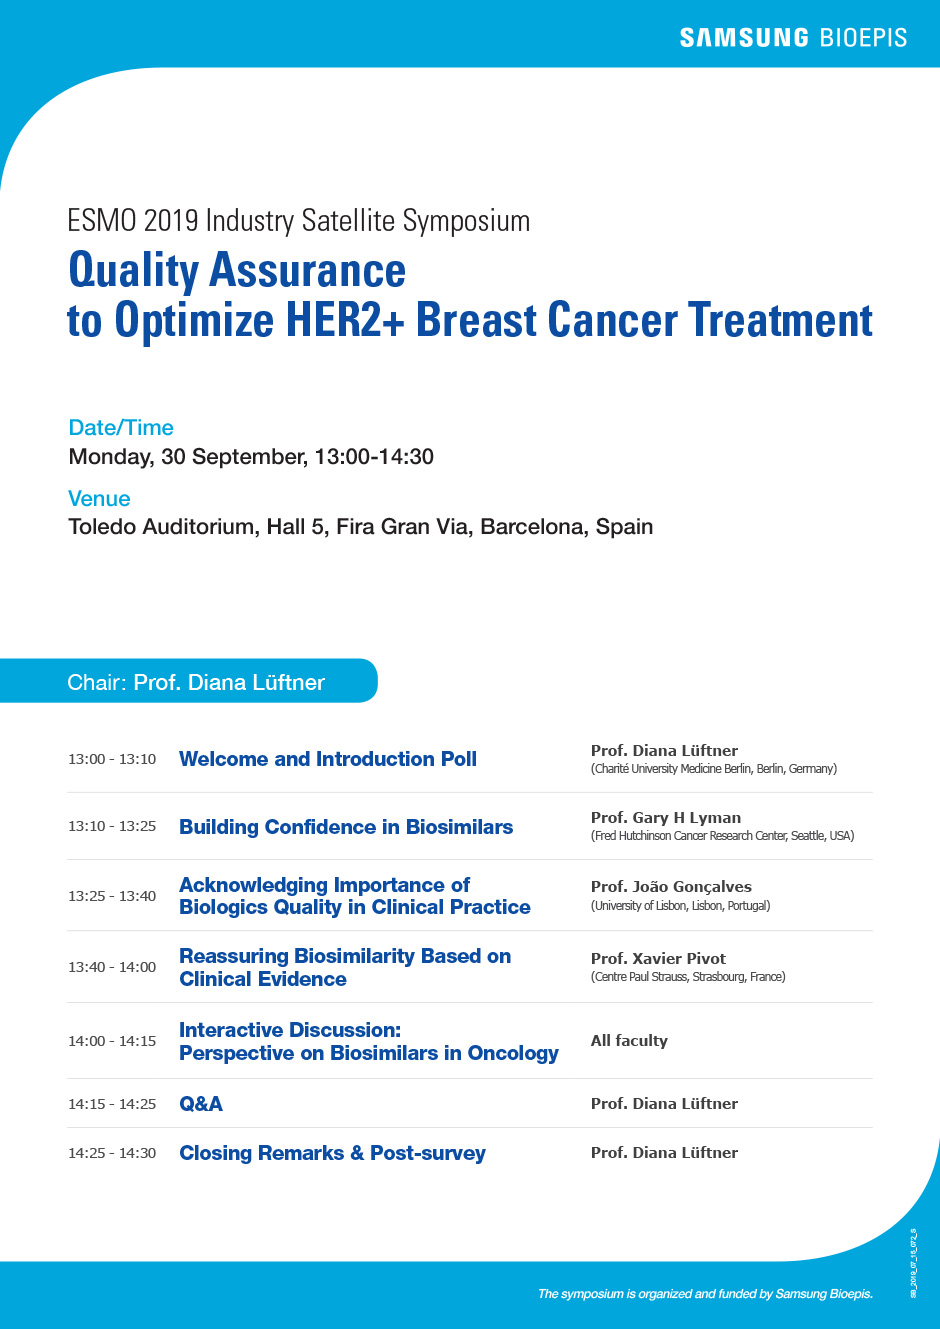 49-Quality-Assurance-to-Optimize-HER2+Breast-Cancer-Treatment-SAMSUNG